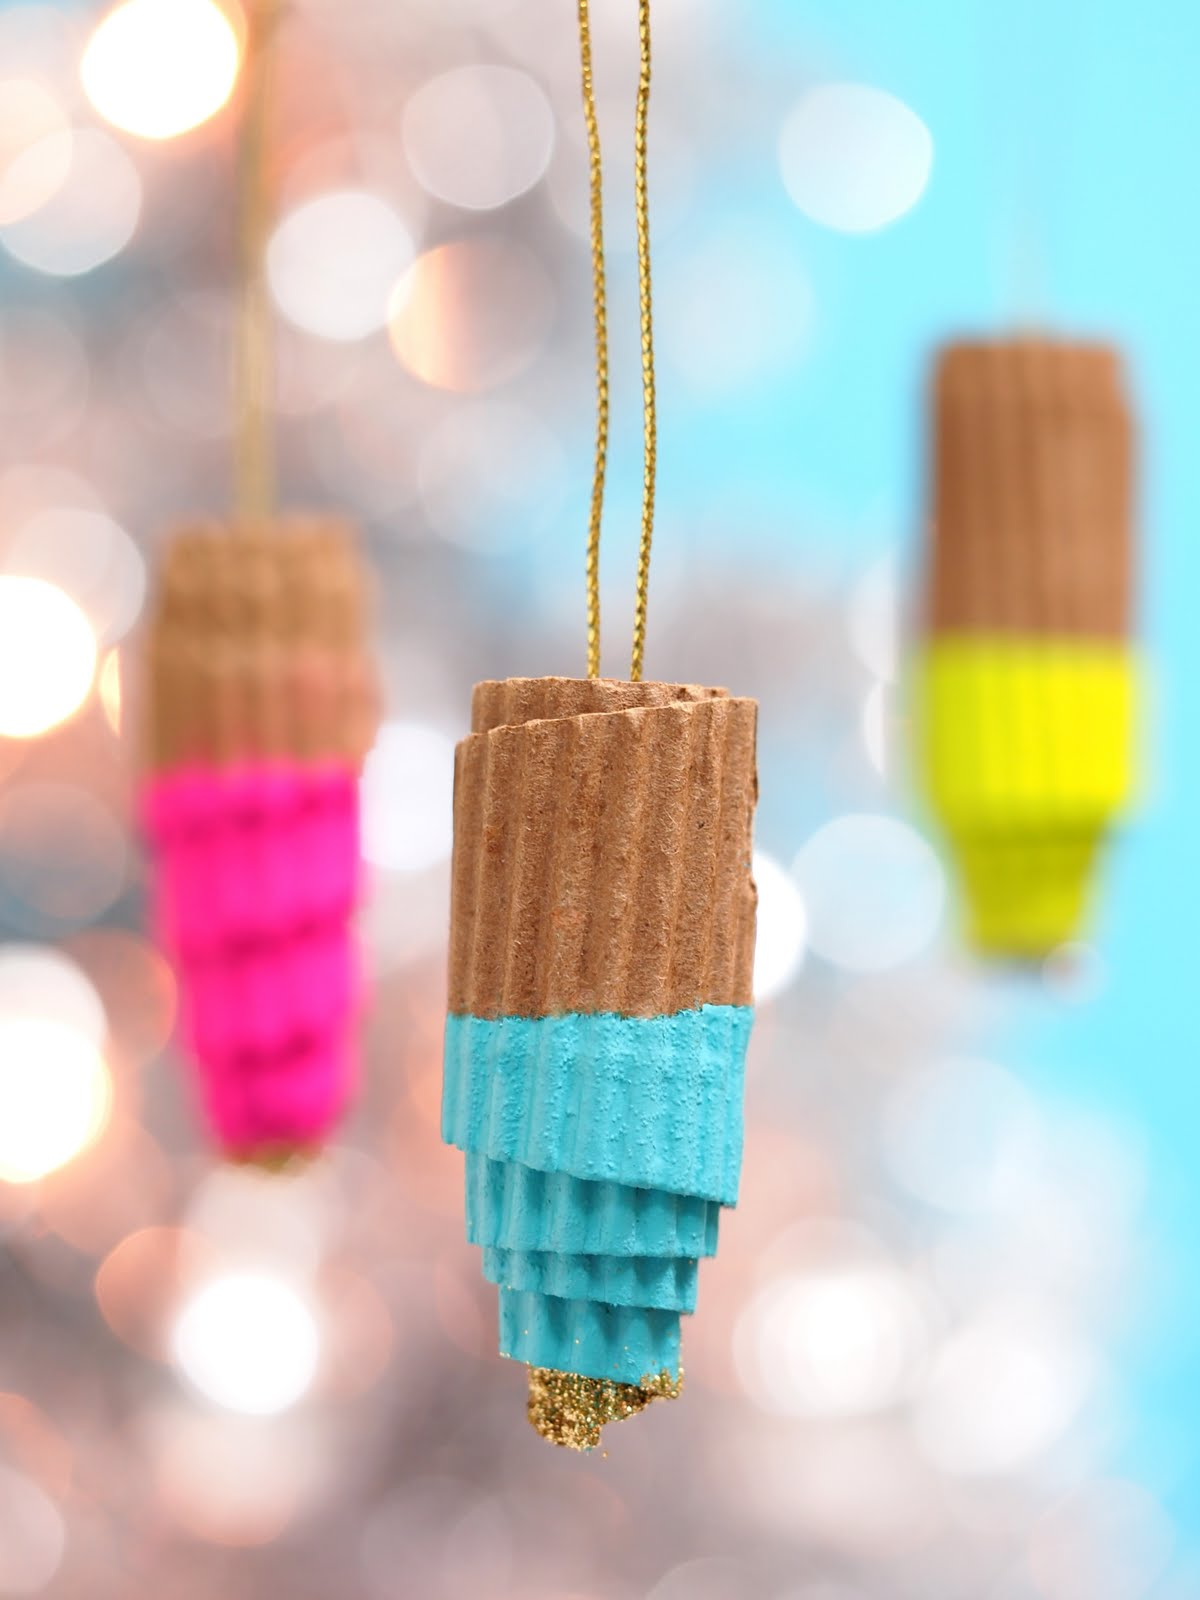 Ice cream ornaments - Recycled Cardboard Coffee Cup Sleeve Ornaments